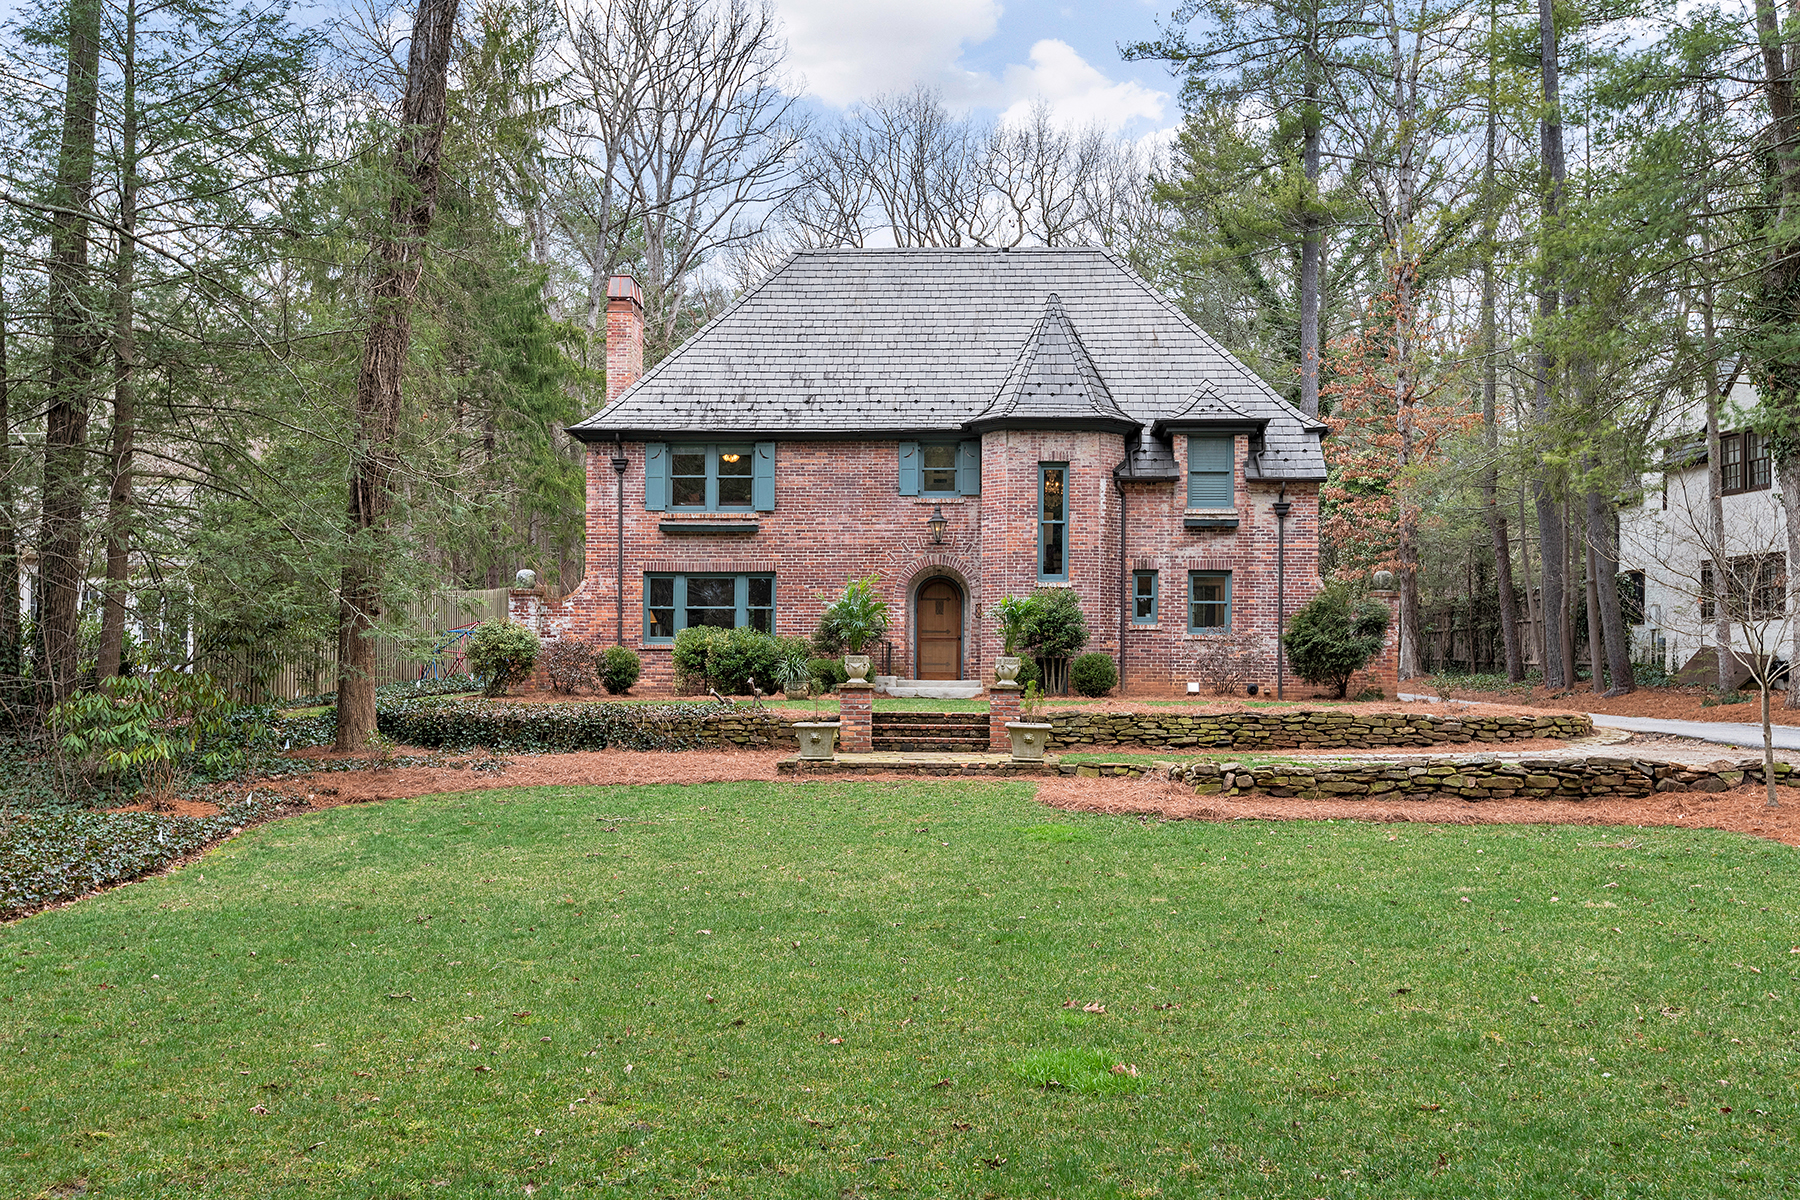 Casa Unifamiliar por un Venta en MEMORABLE FRENCH NORMANDY COUNTRY HOME 375 Vanderbilt Rd, Asheville, Carolina Del Norte 28803 Estados Unidos